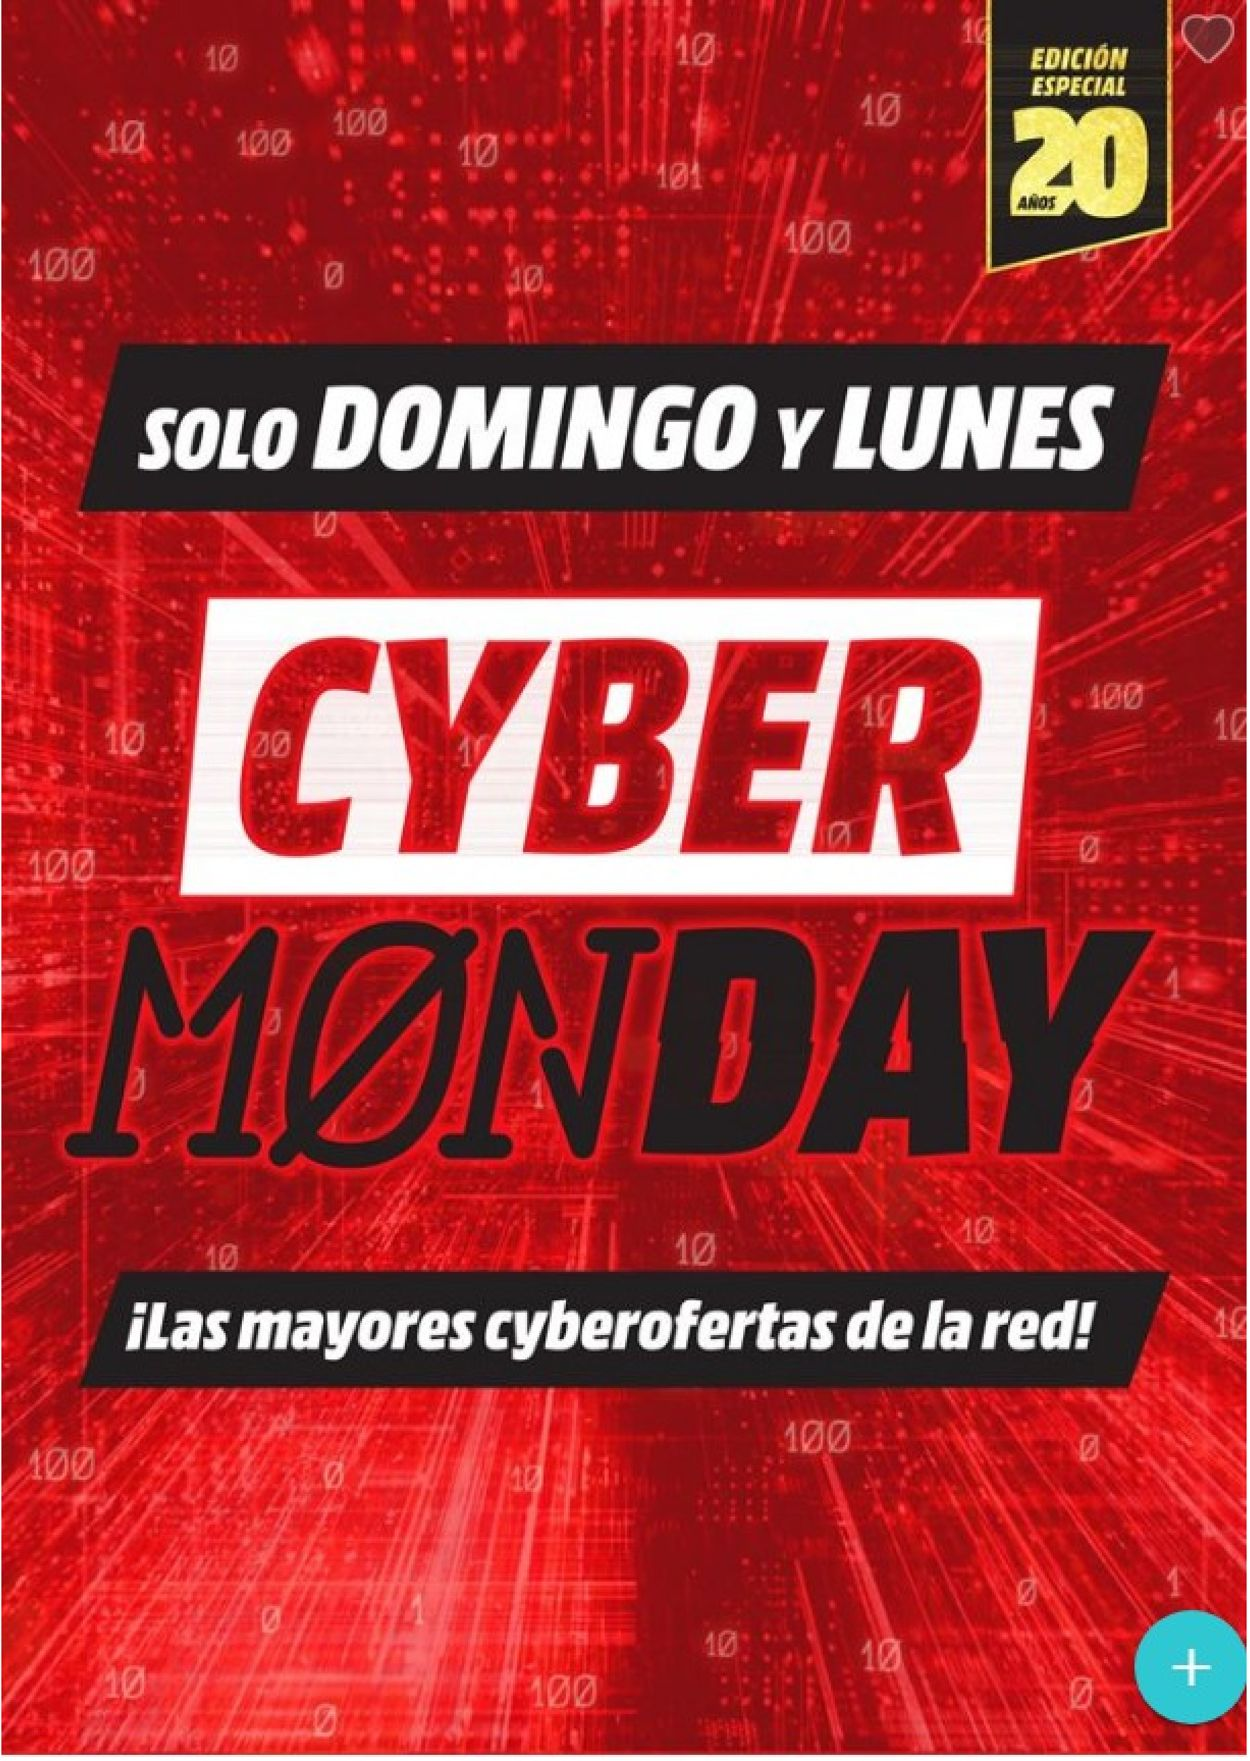 Media Markt - Cyber Monday 2019 Folleto - 01.12-02.12.2019